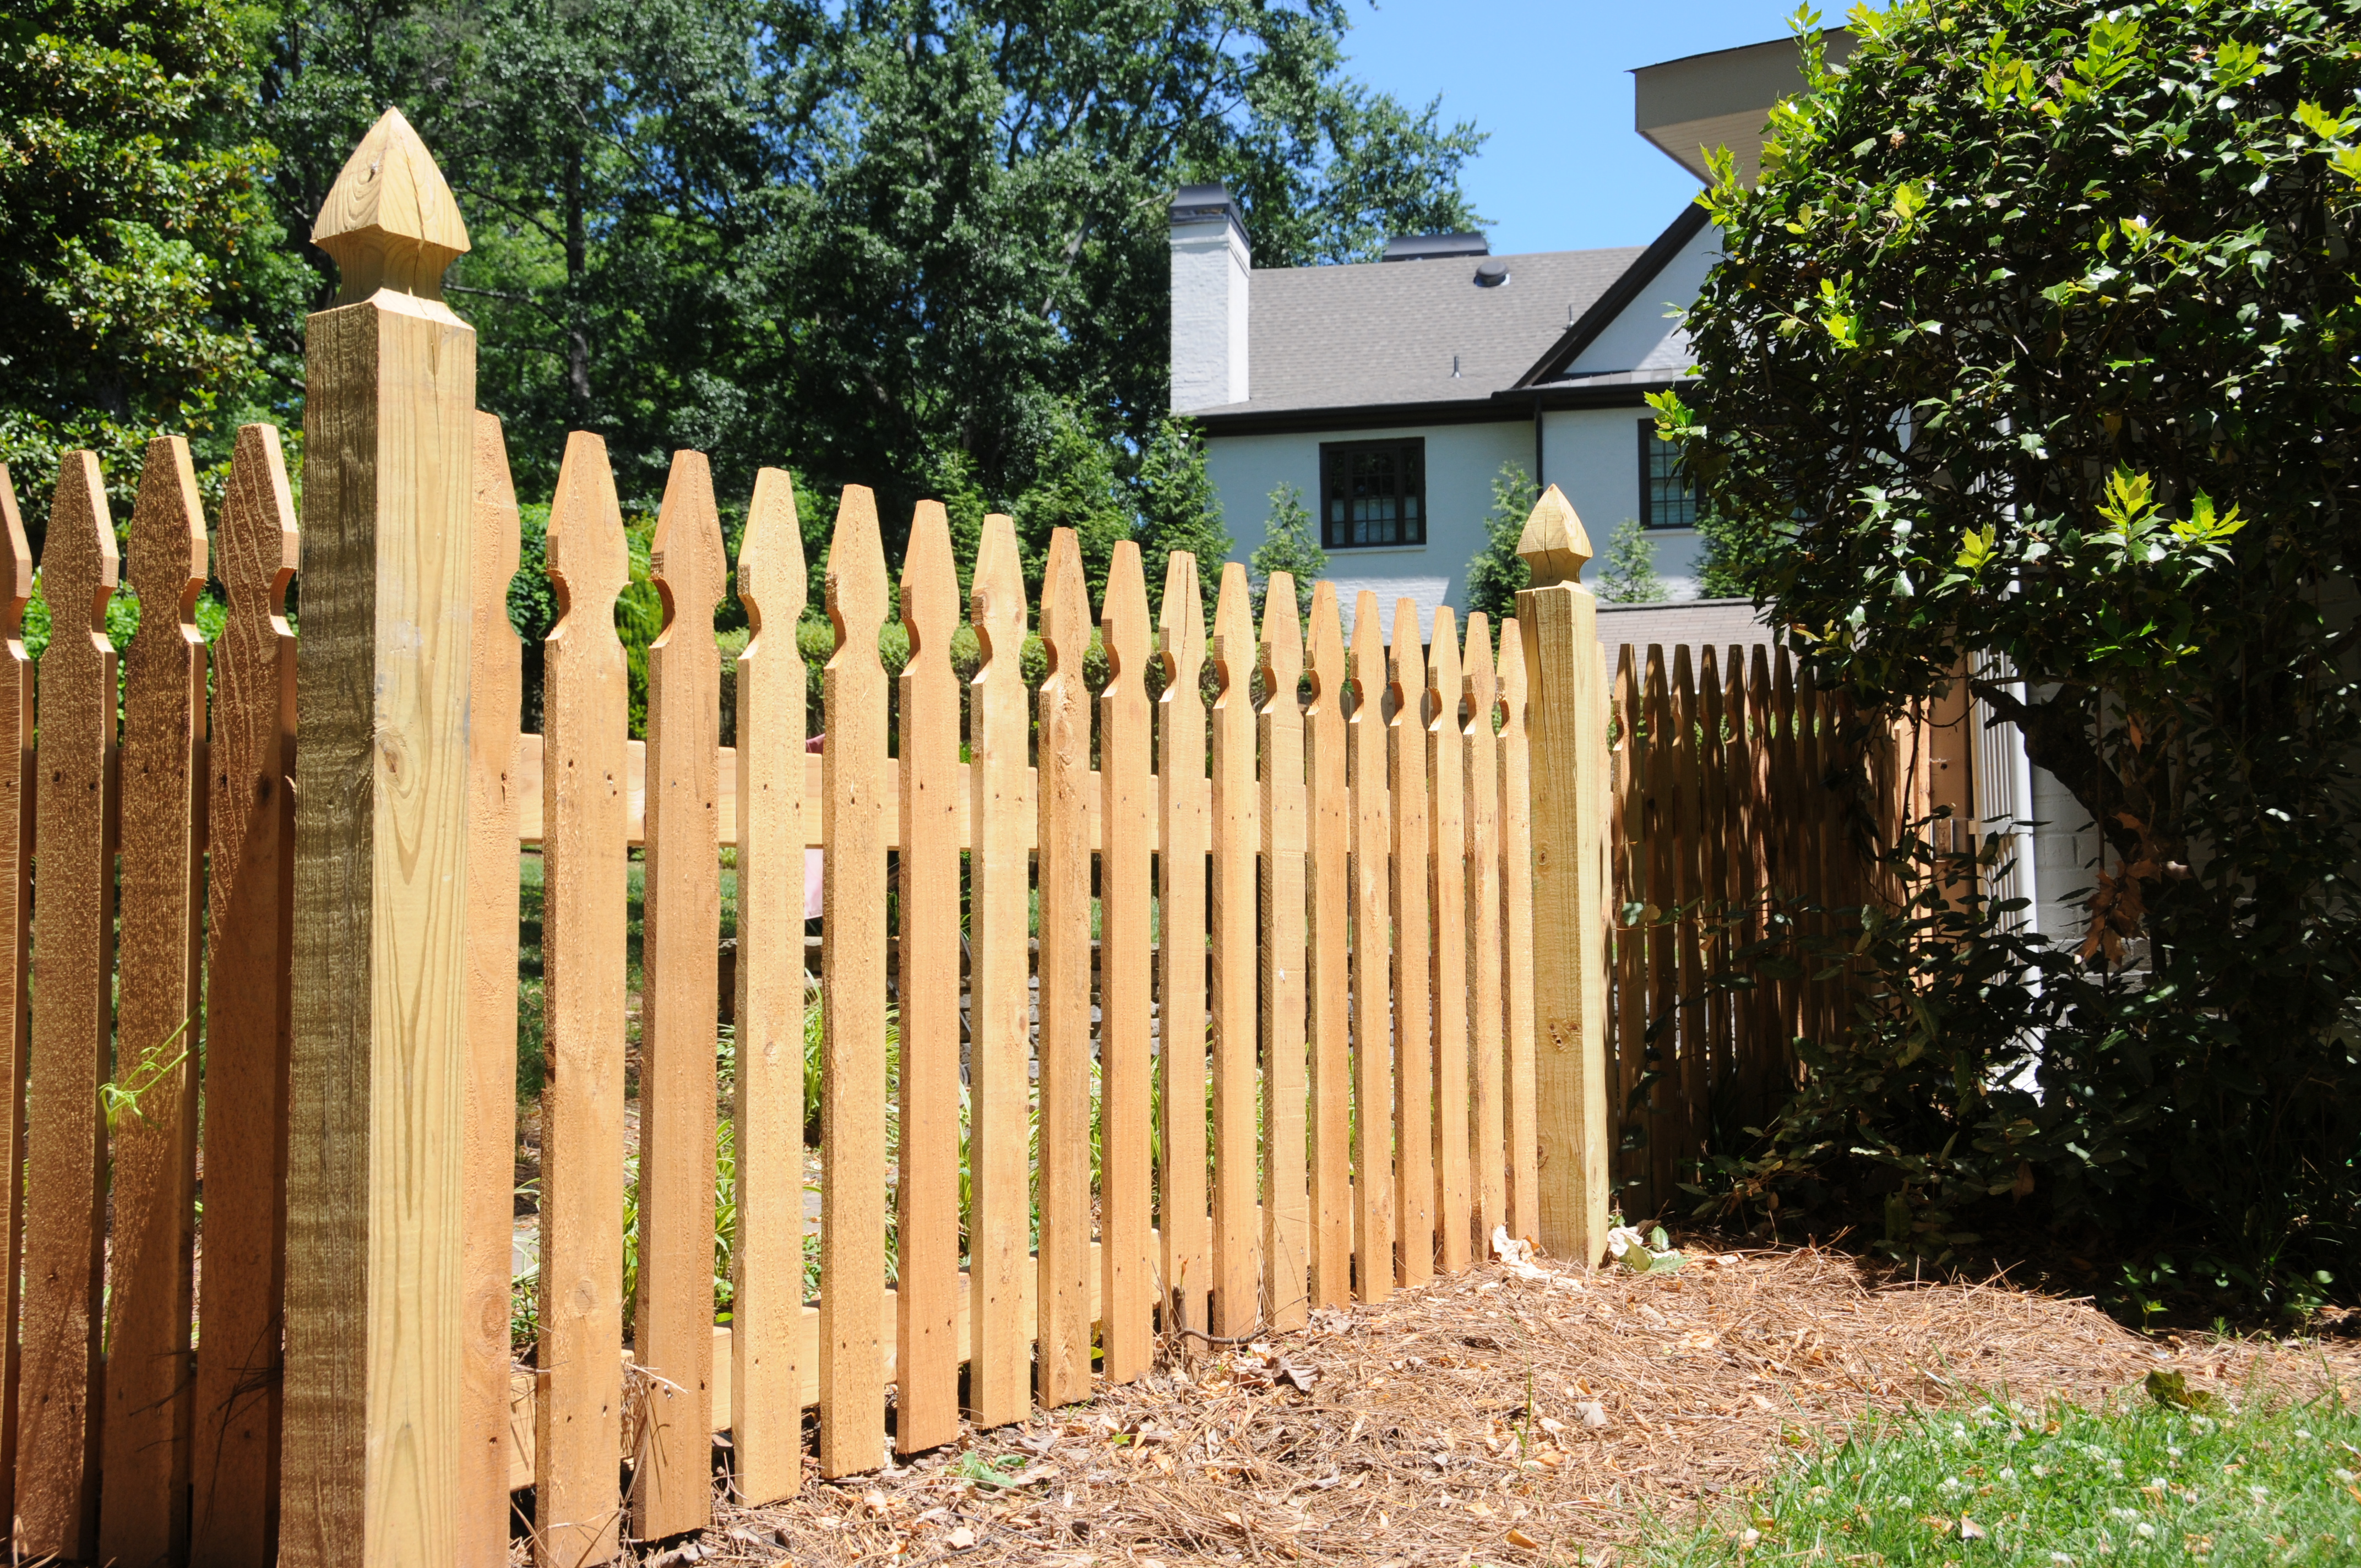 Fencing clipart fench. Standard cedar fence designs